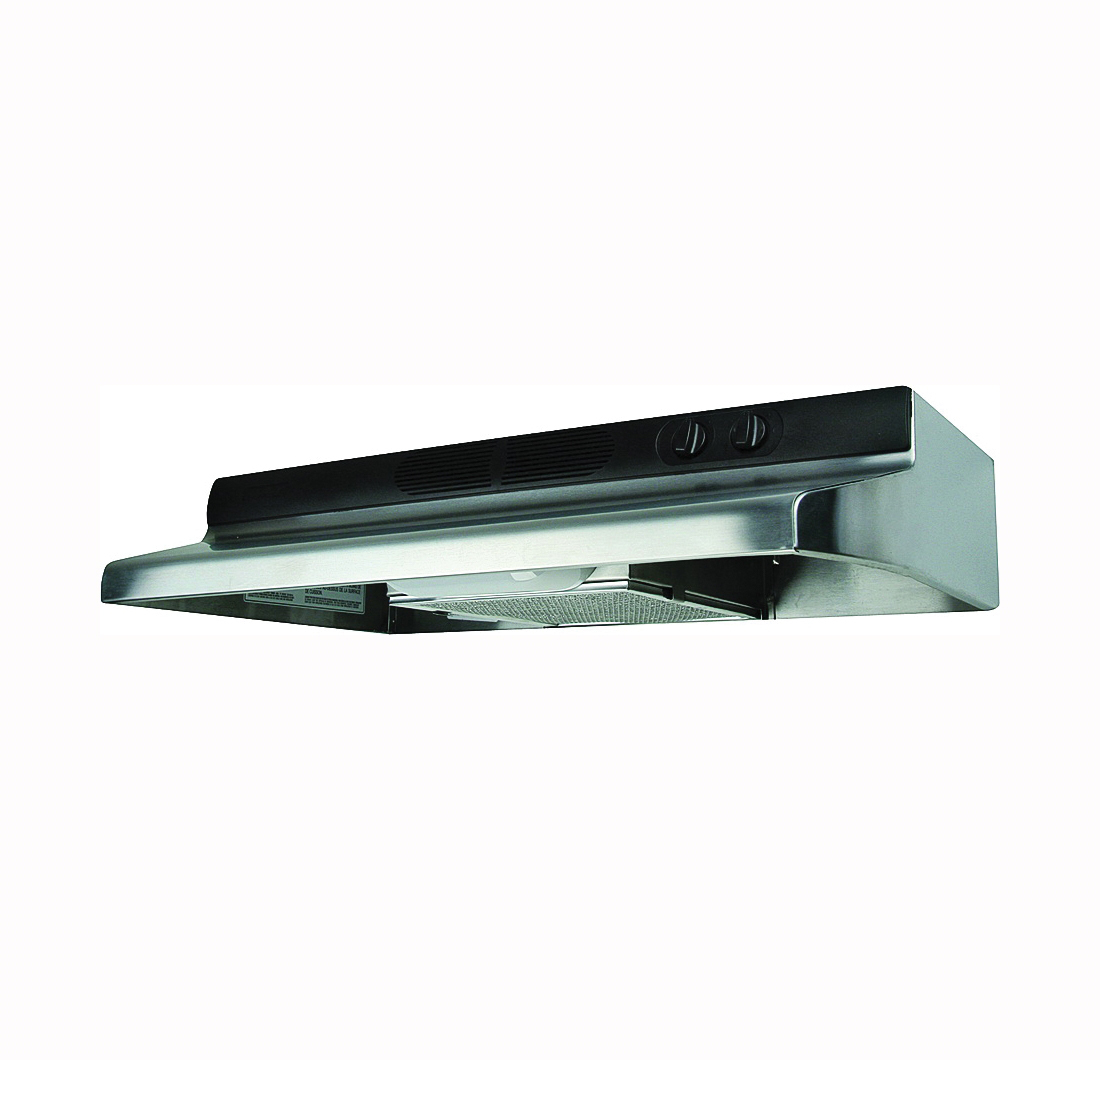 Picture of Air King Quiet Zone QZ QZ2308 Range Hood, 200 cfm, 30 in W, 12 in D, 6 in H, Cold Rolled Steel